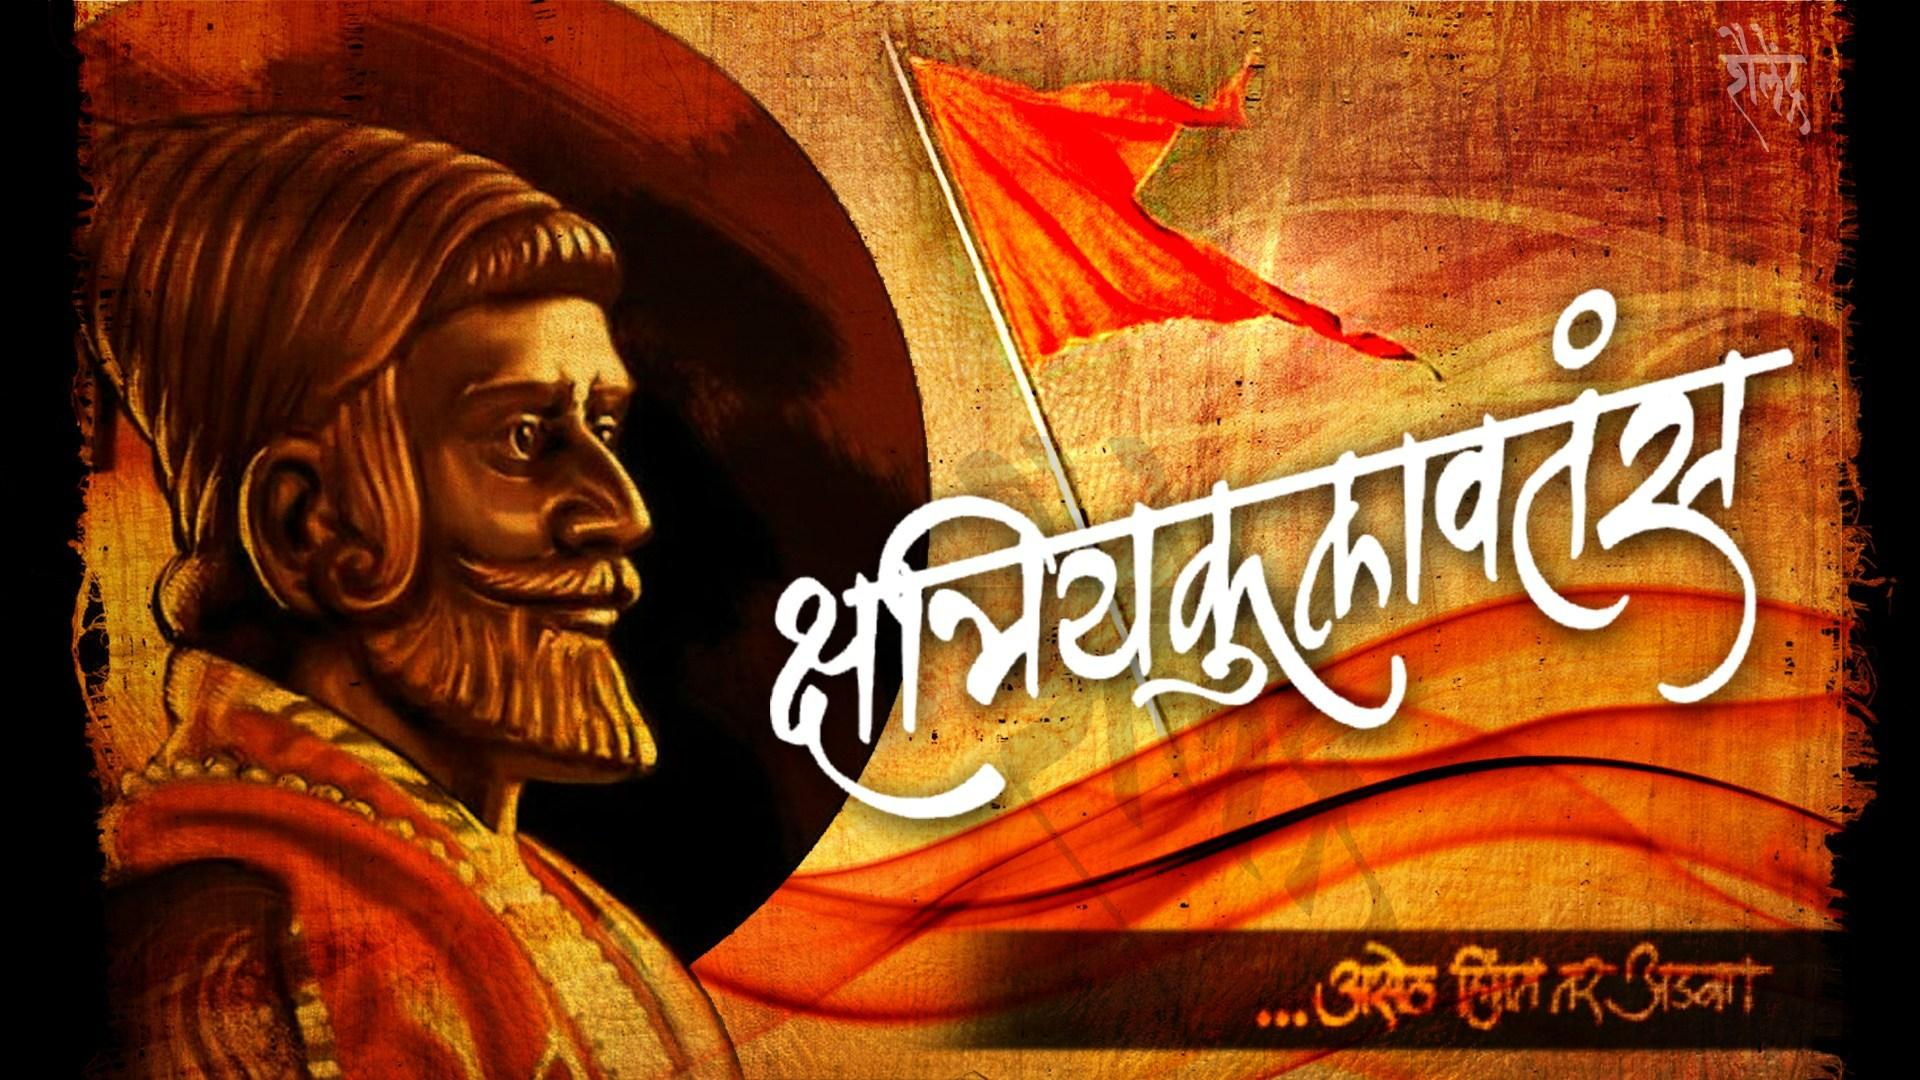 chhatrapati shivaji maharaj hd desktop wallpapers wallpaper cave